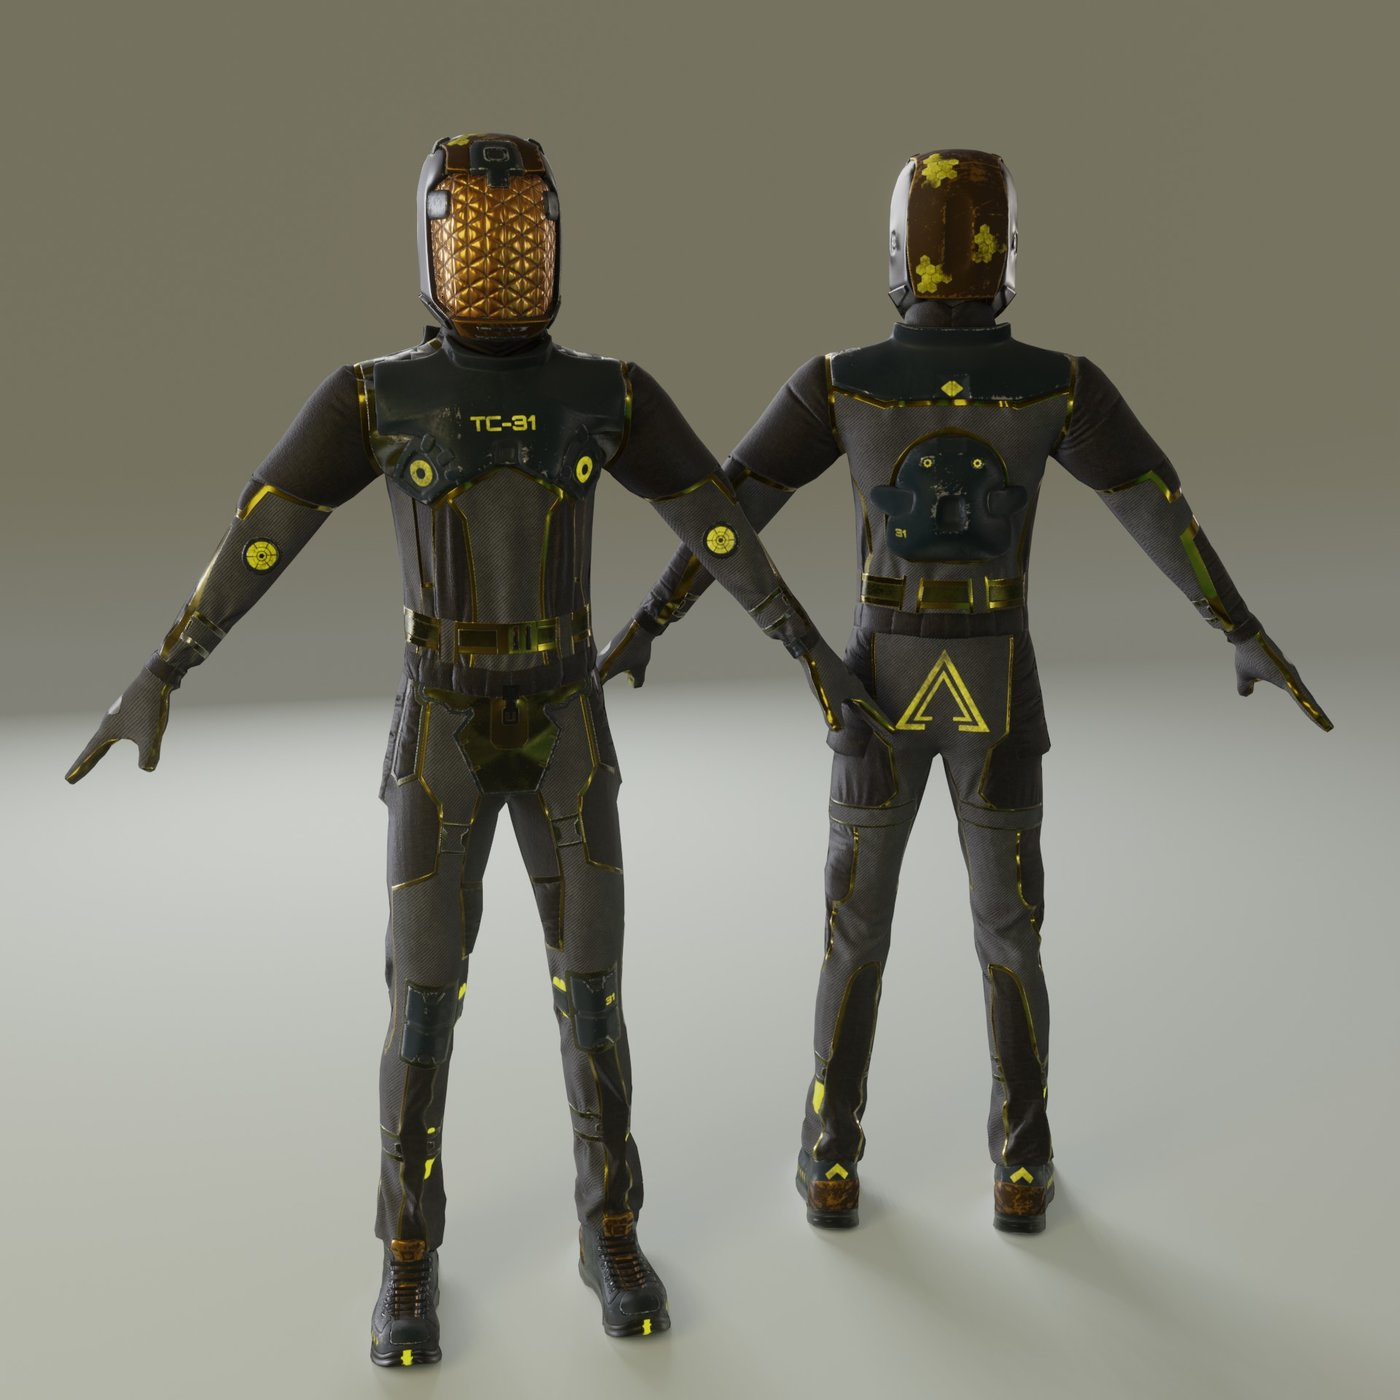 Spacesuit - 2 3d model